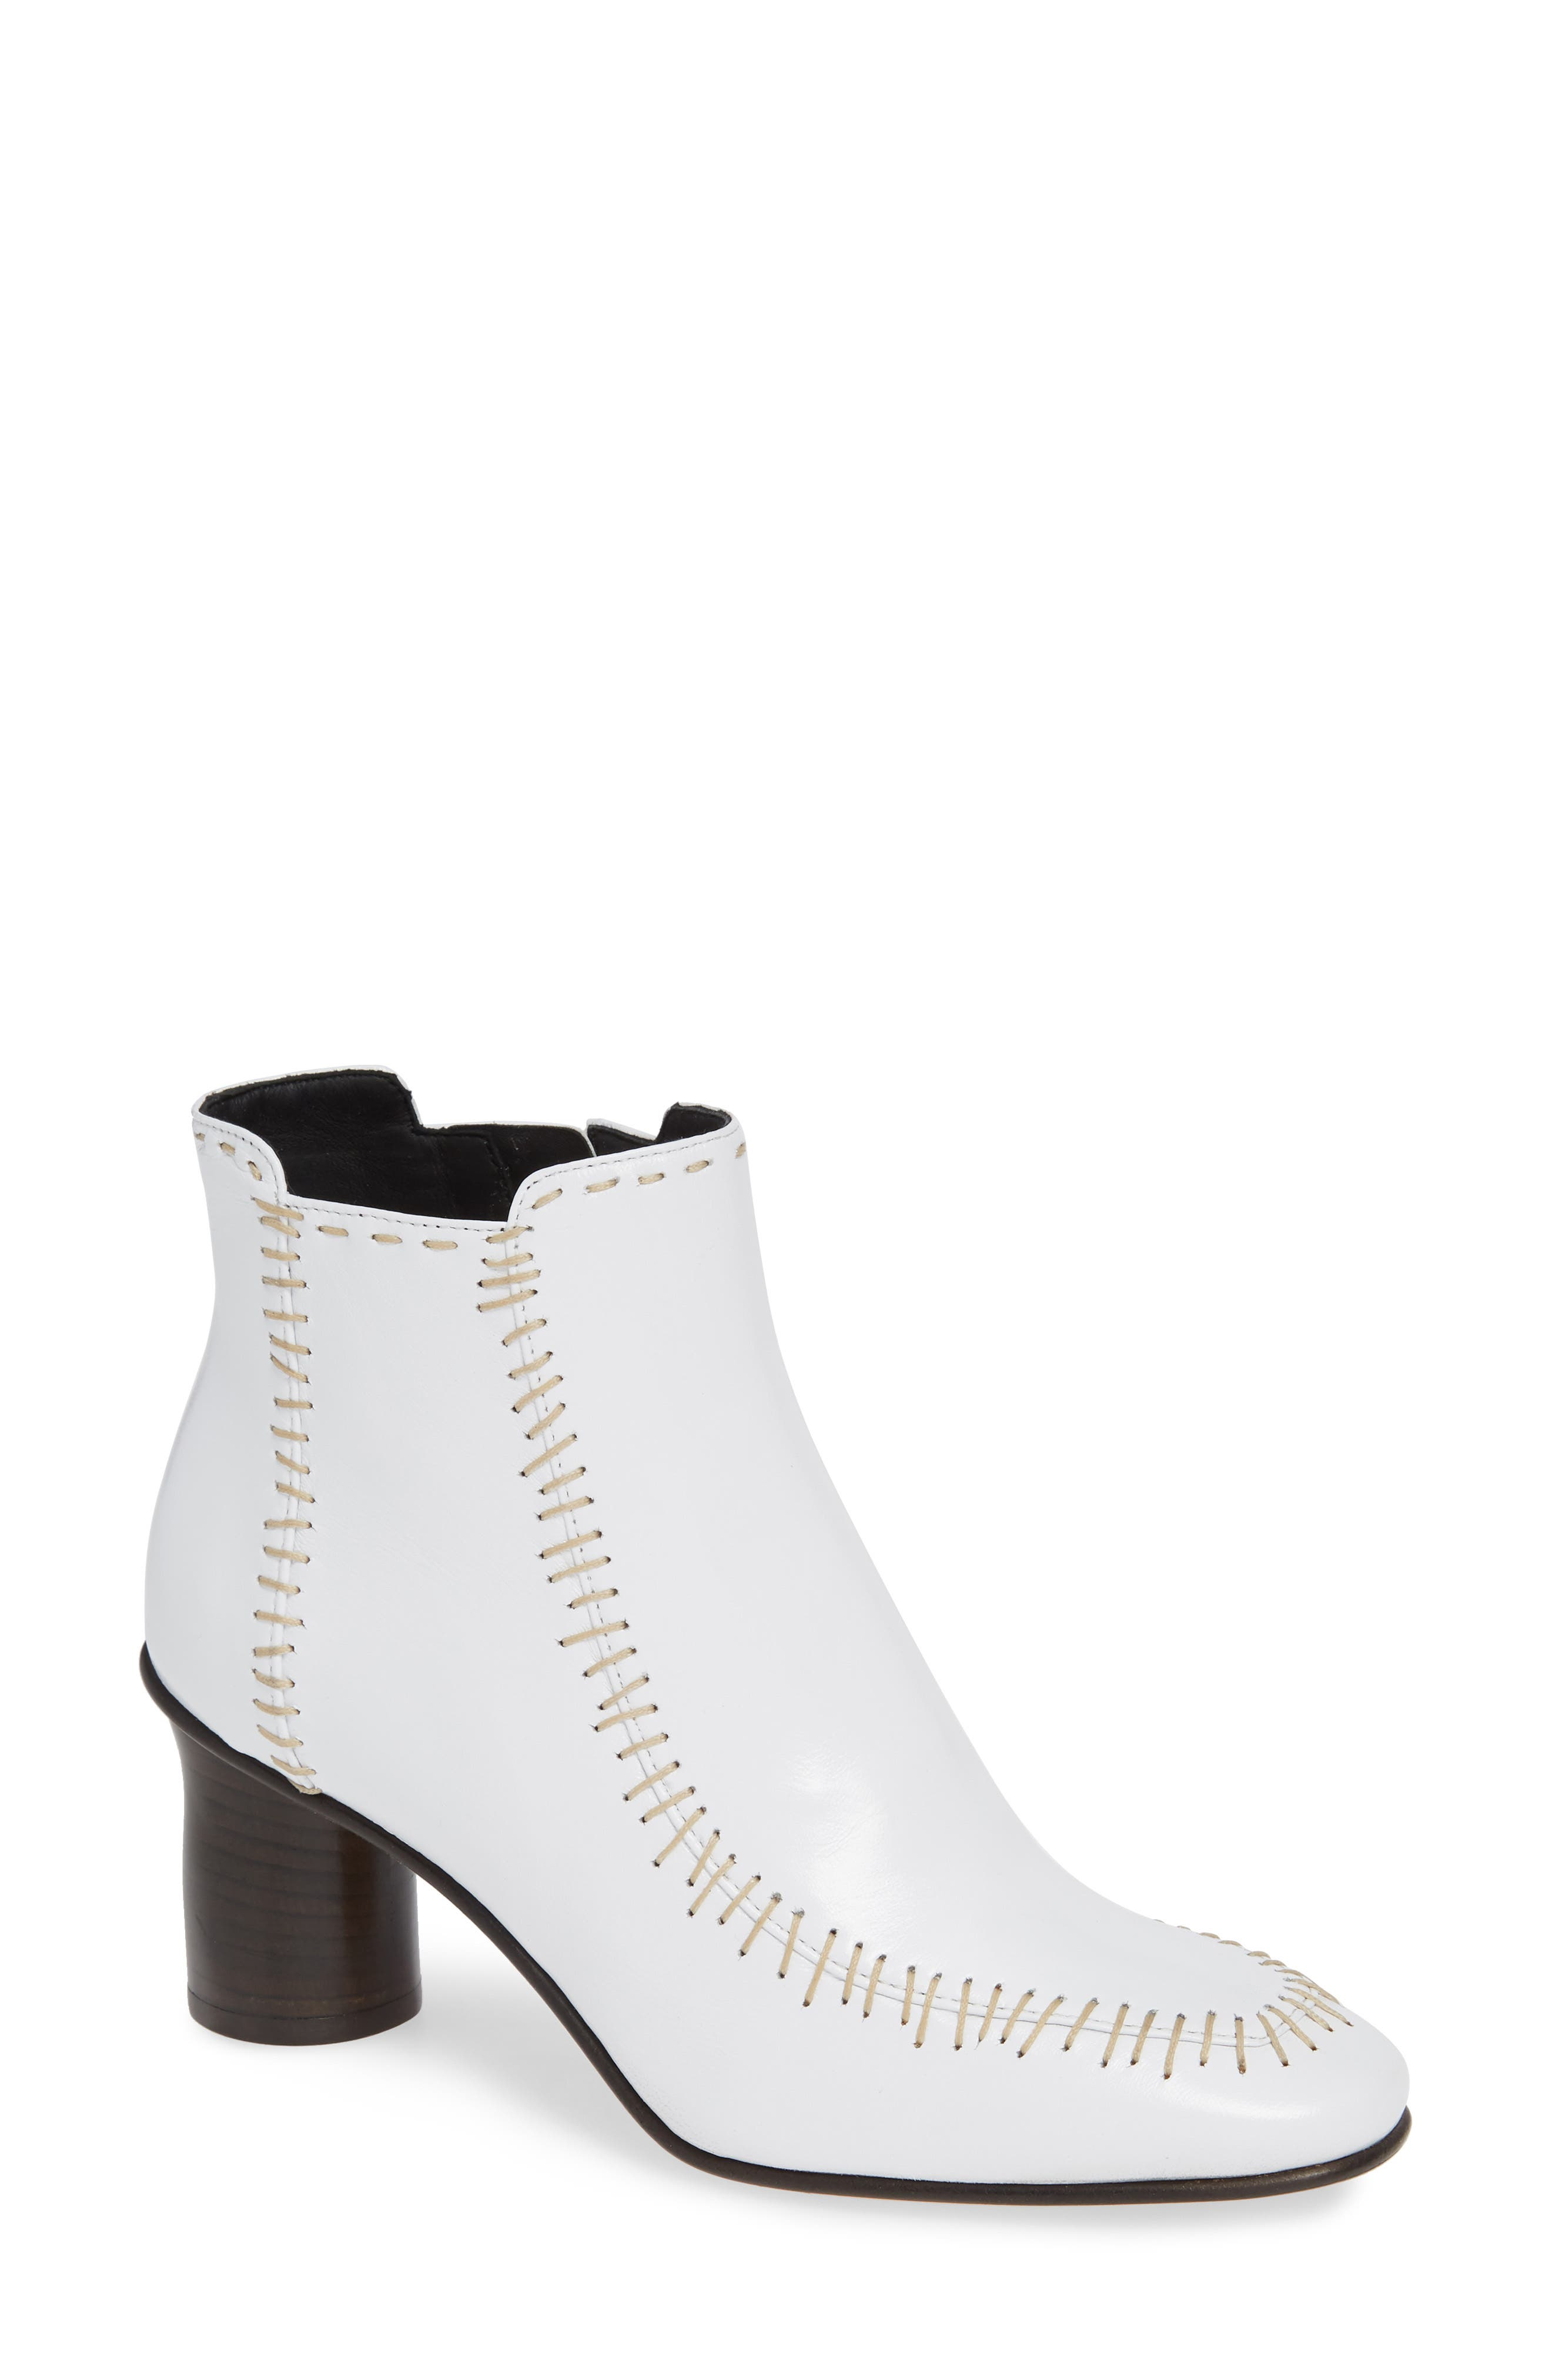 Stitch Leather Bootie,                         Main,                         color, WHITE